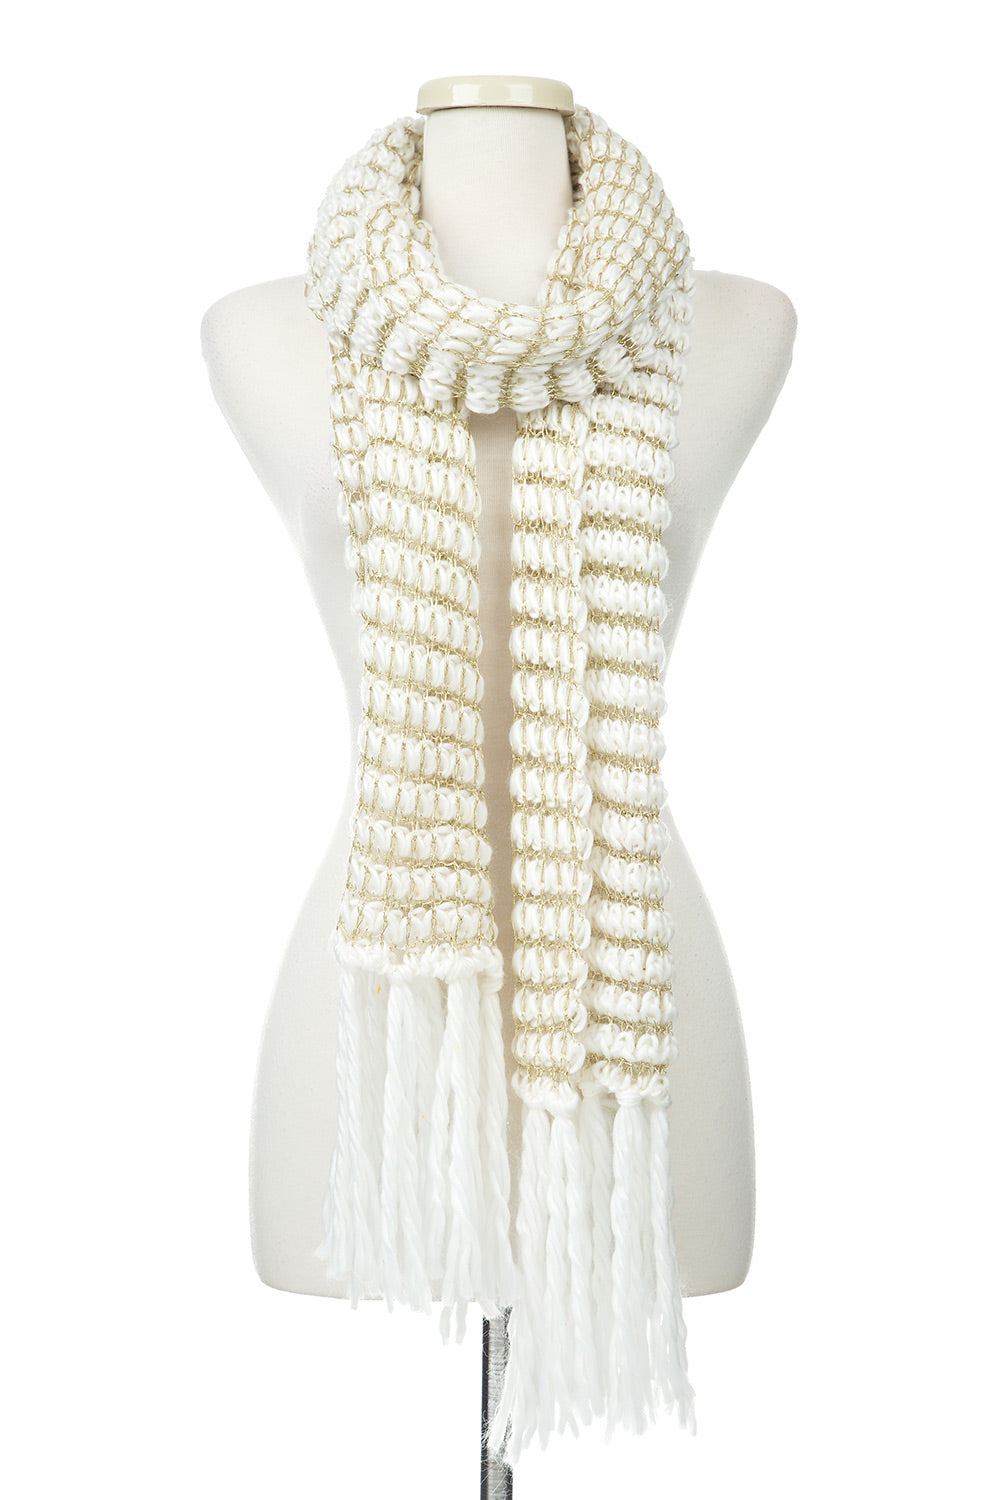 Type 1 Knit Netting Scarf